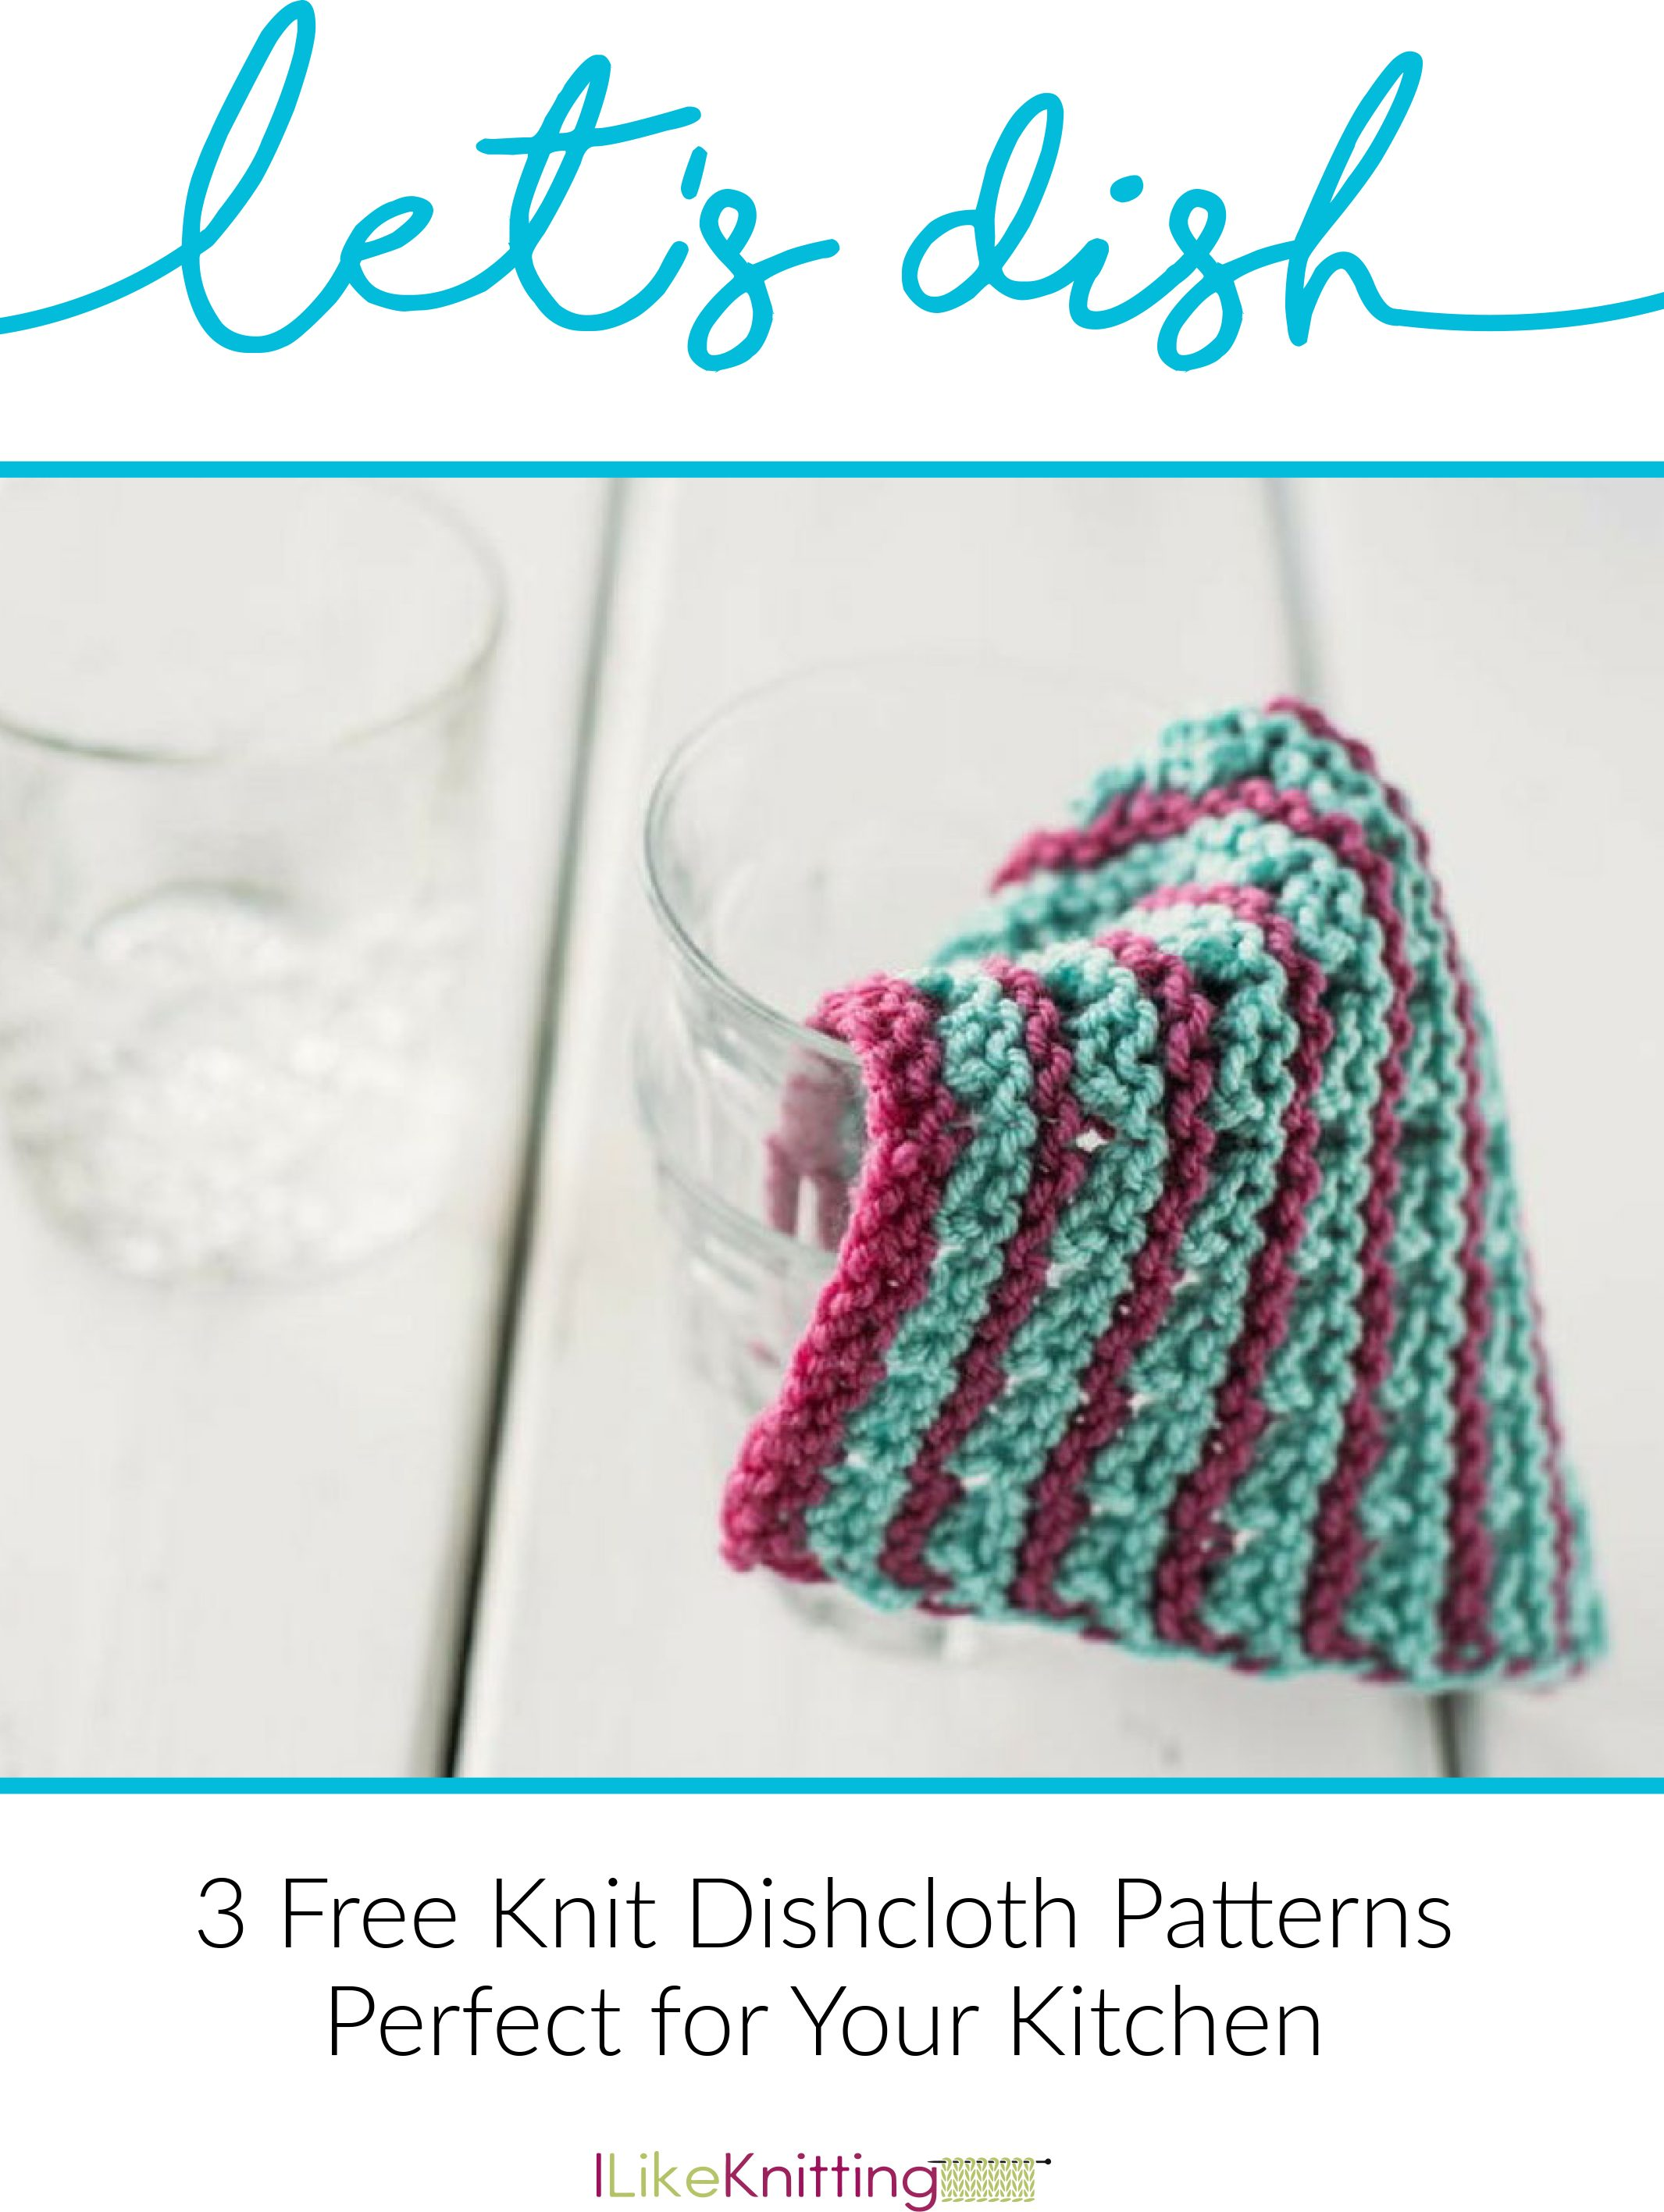 Let's Dish: 3 Free Knit Dishcloth Patterns Perfect for Your Kitchen